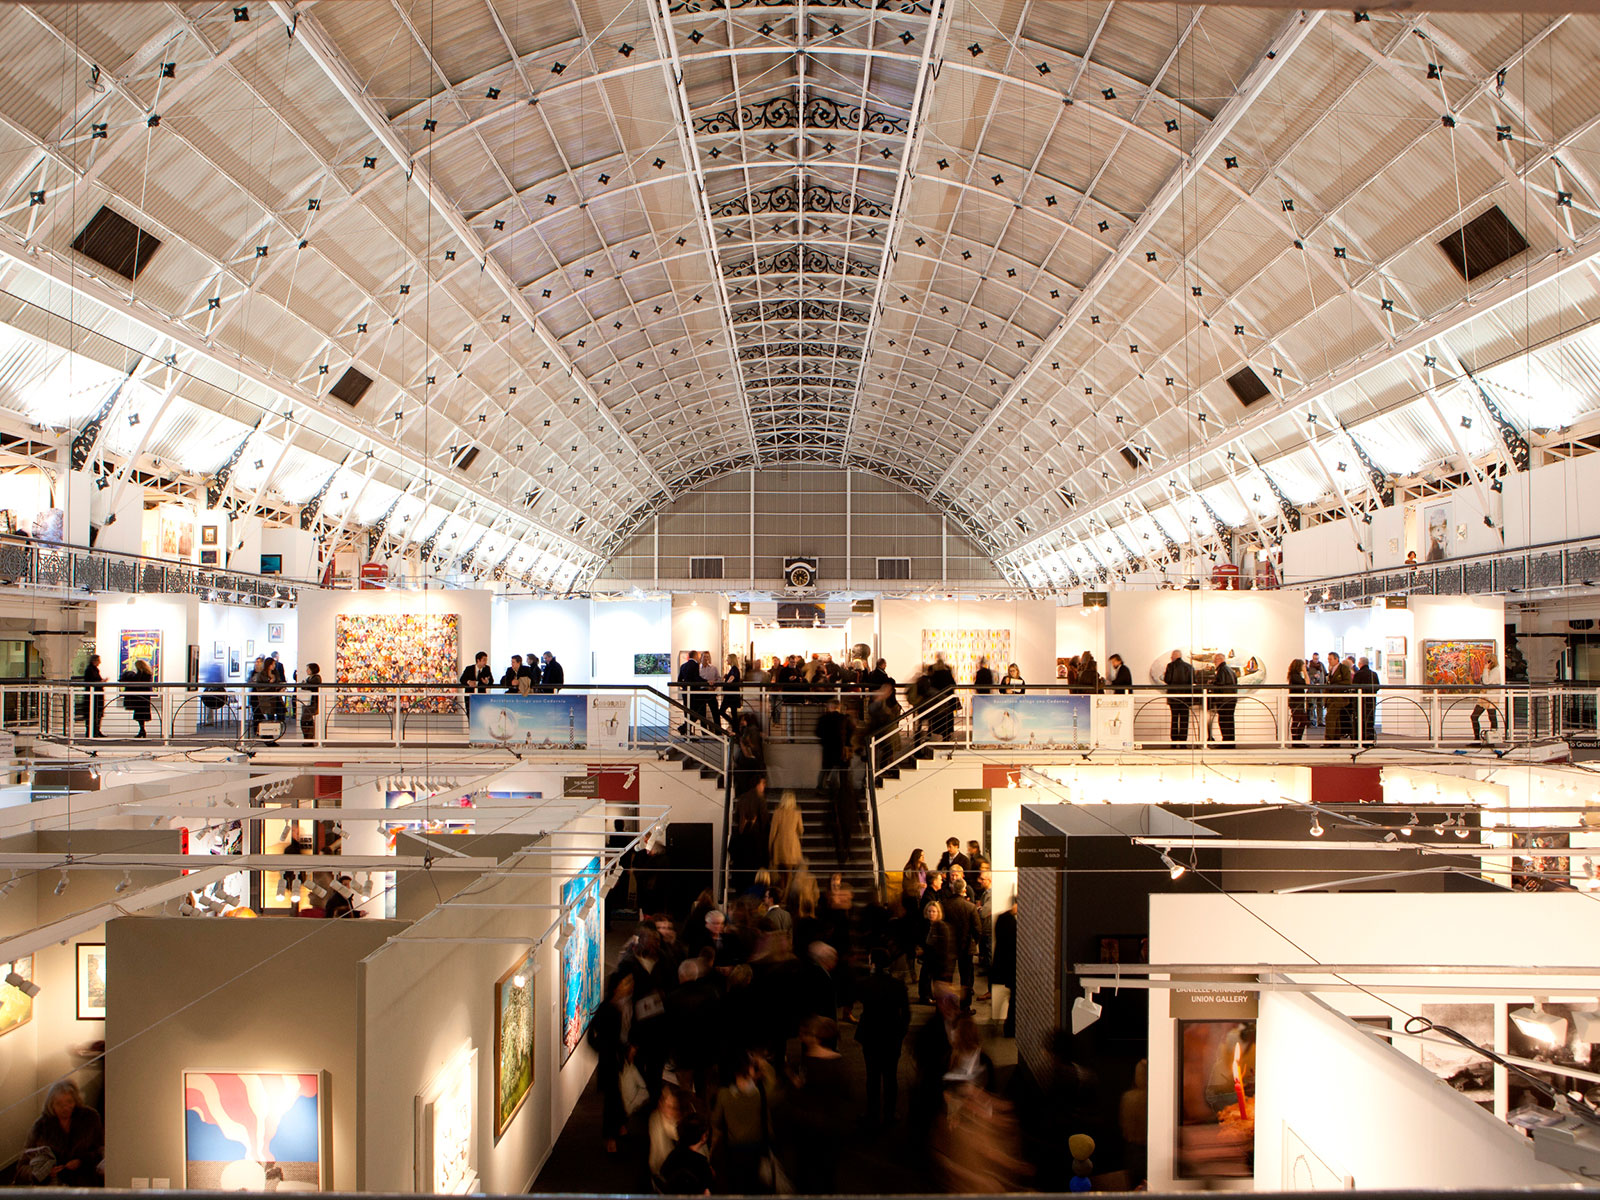 'London Art Fair 2016' at the Business Design Centre in Islington